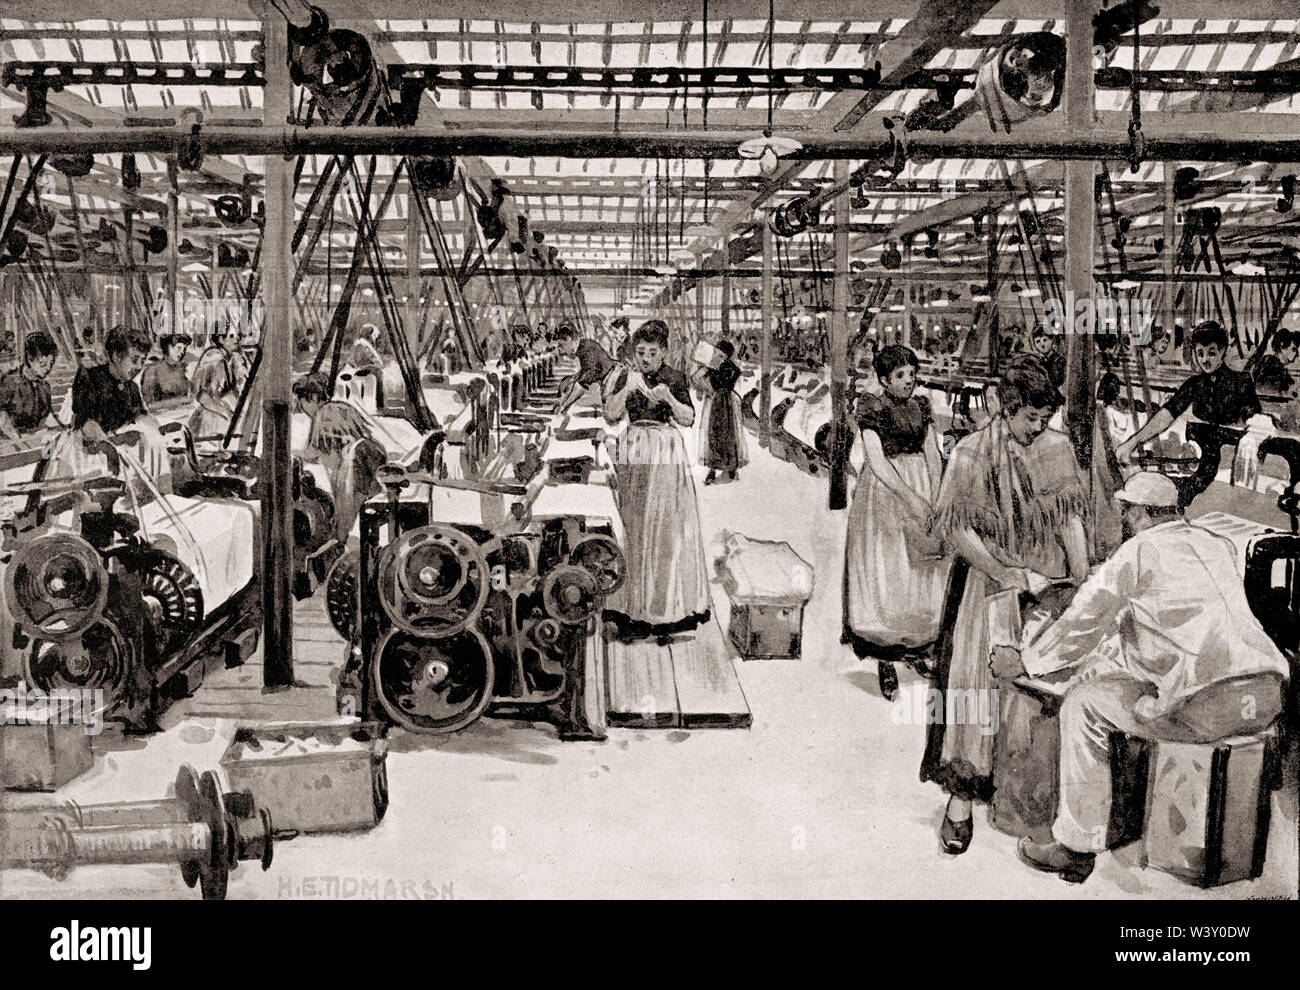 Richard Haworth and Co., cotton industry, Manchester, England, UK, 19th century - Stock Image